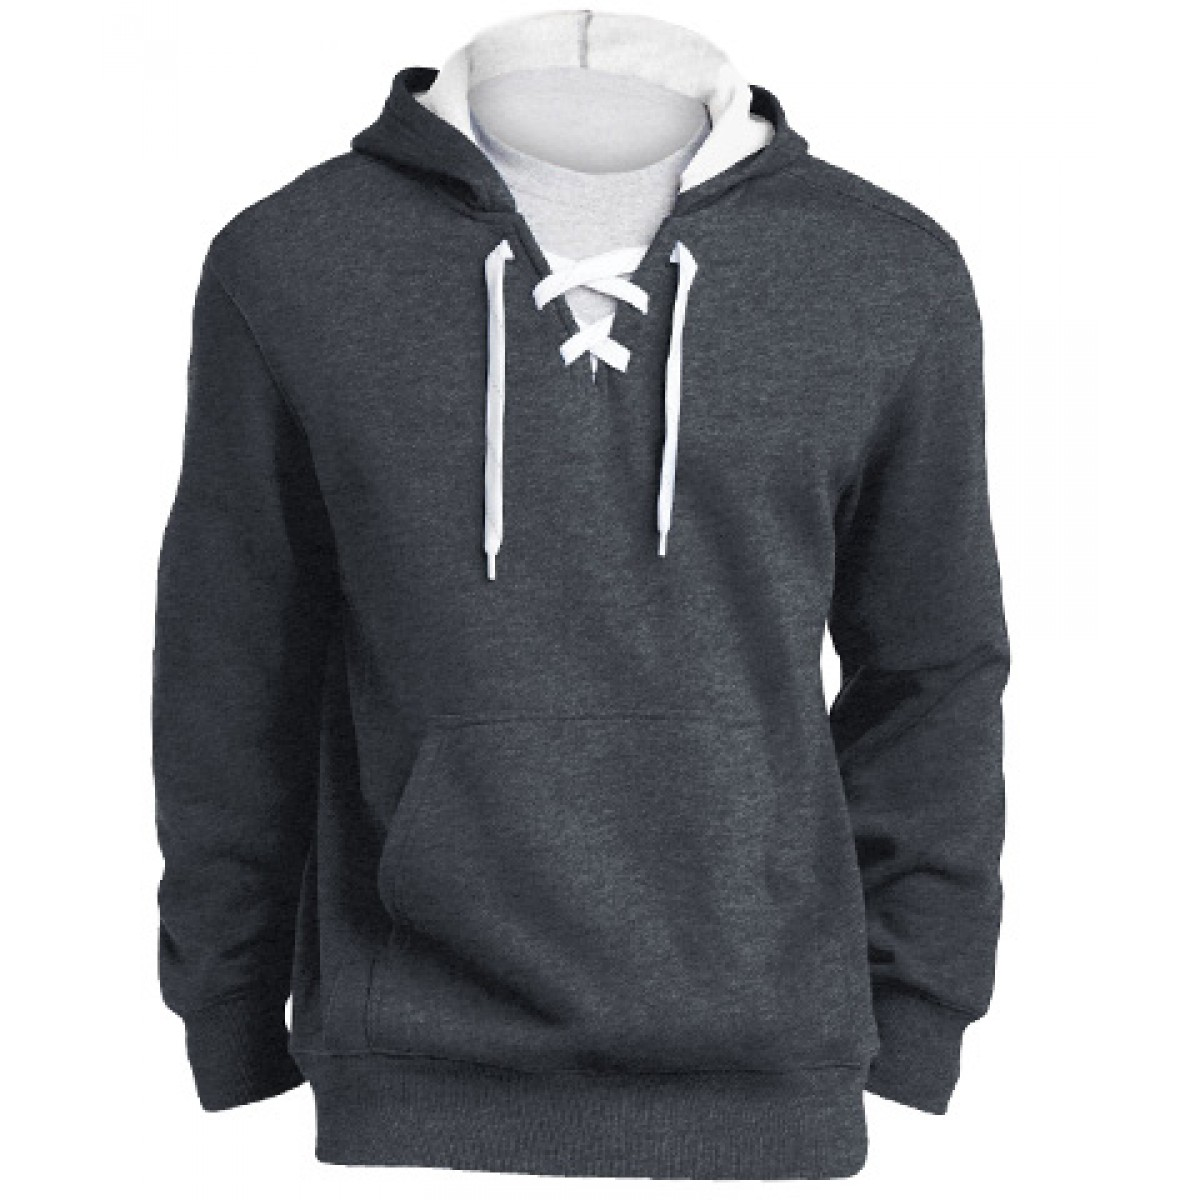 Lace Up Pullover Hooded Sweatshirt-Charocal-M